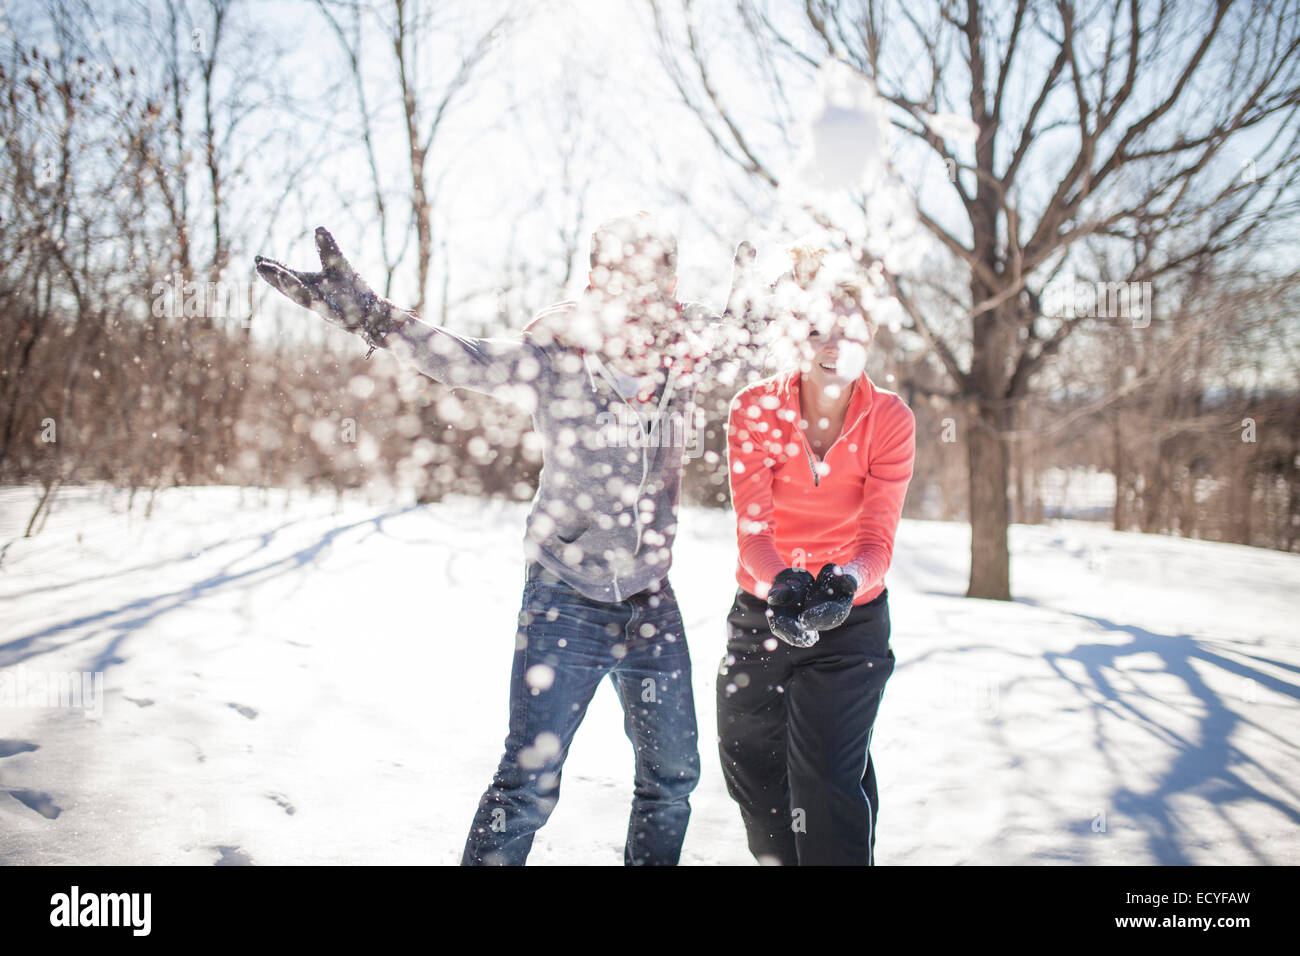 Caucasian couple throwing snowballs - Stock Image